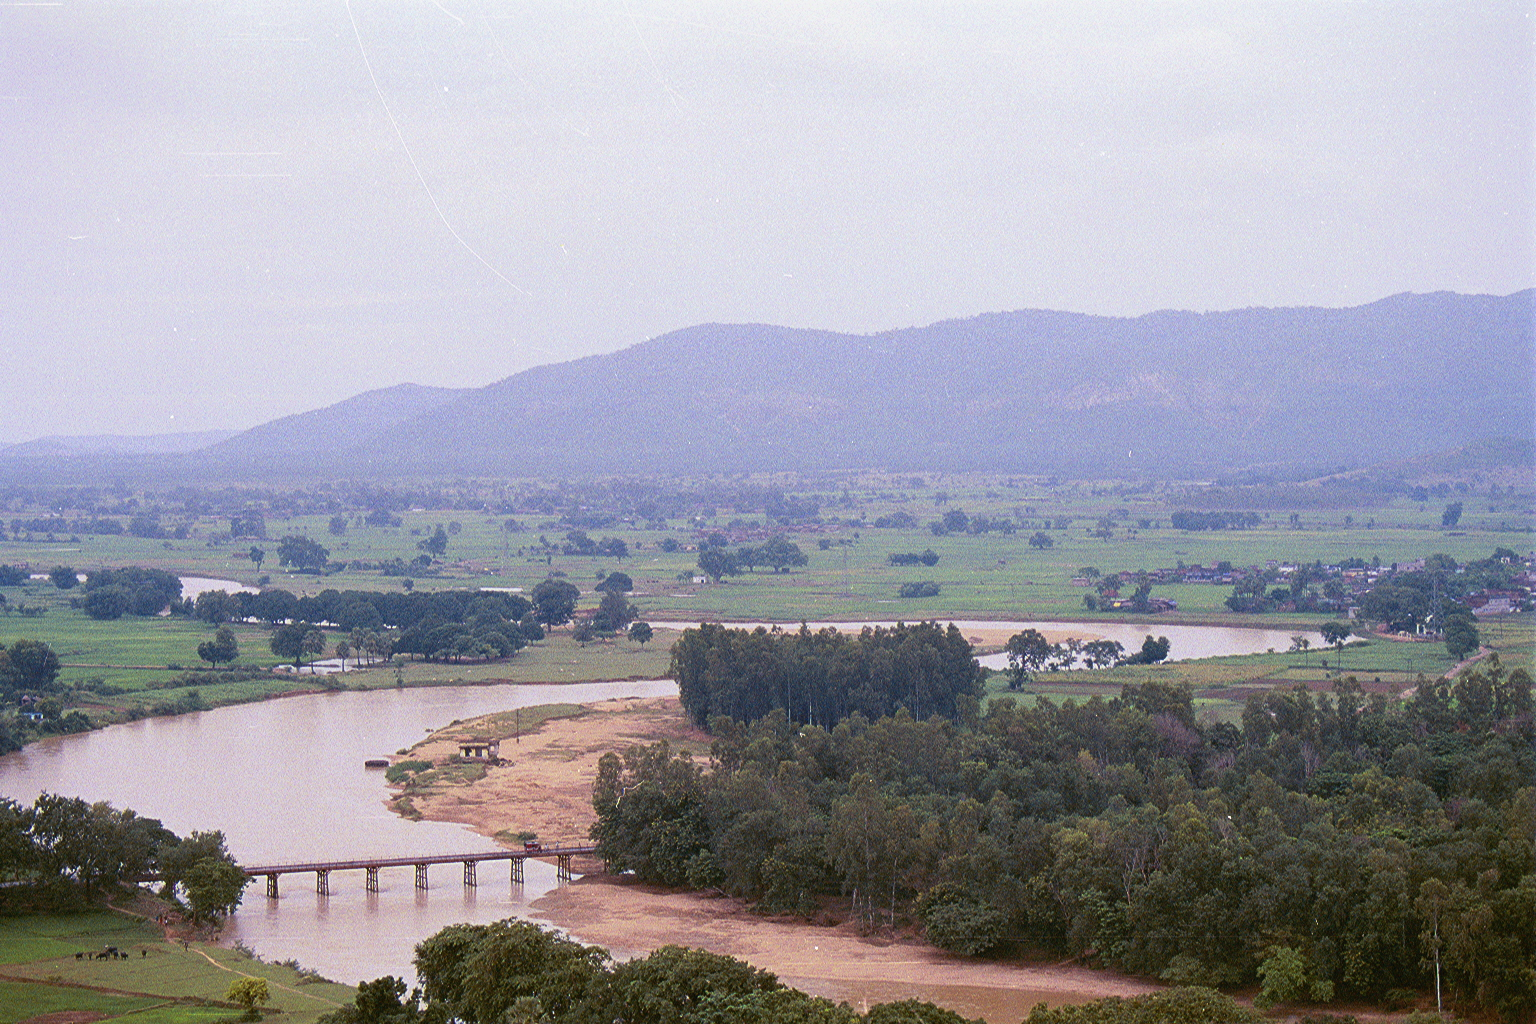 Overlooking 'Mallehpur',(far-right) in the valley below, by river 'Quil'